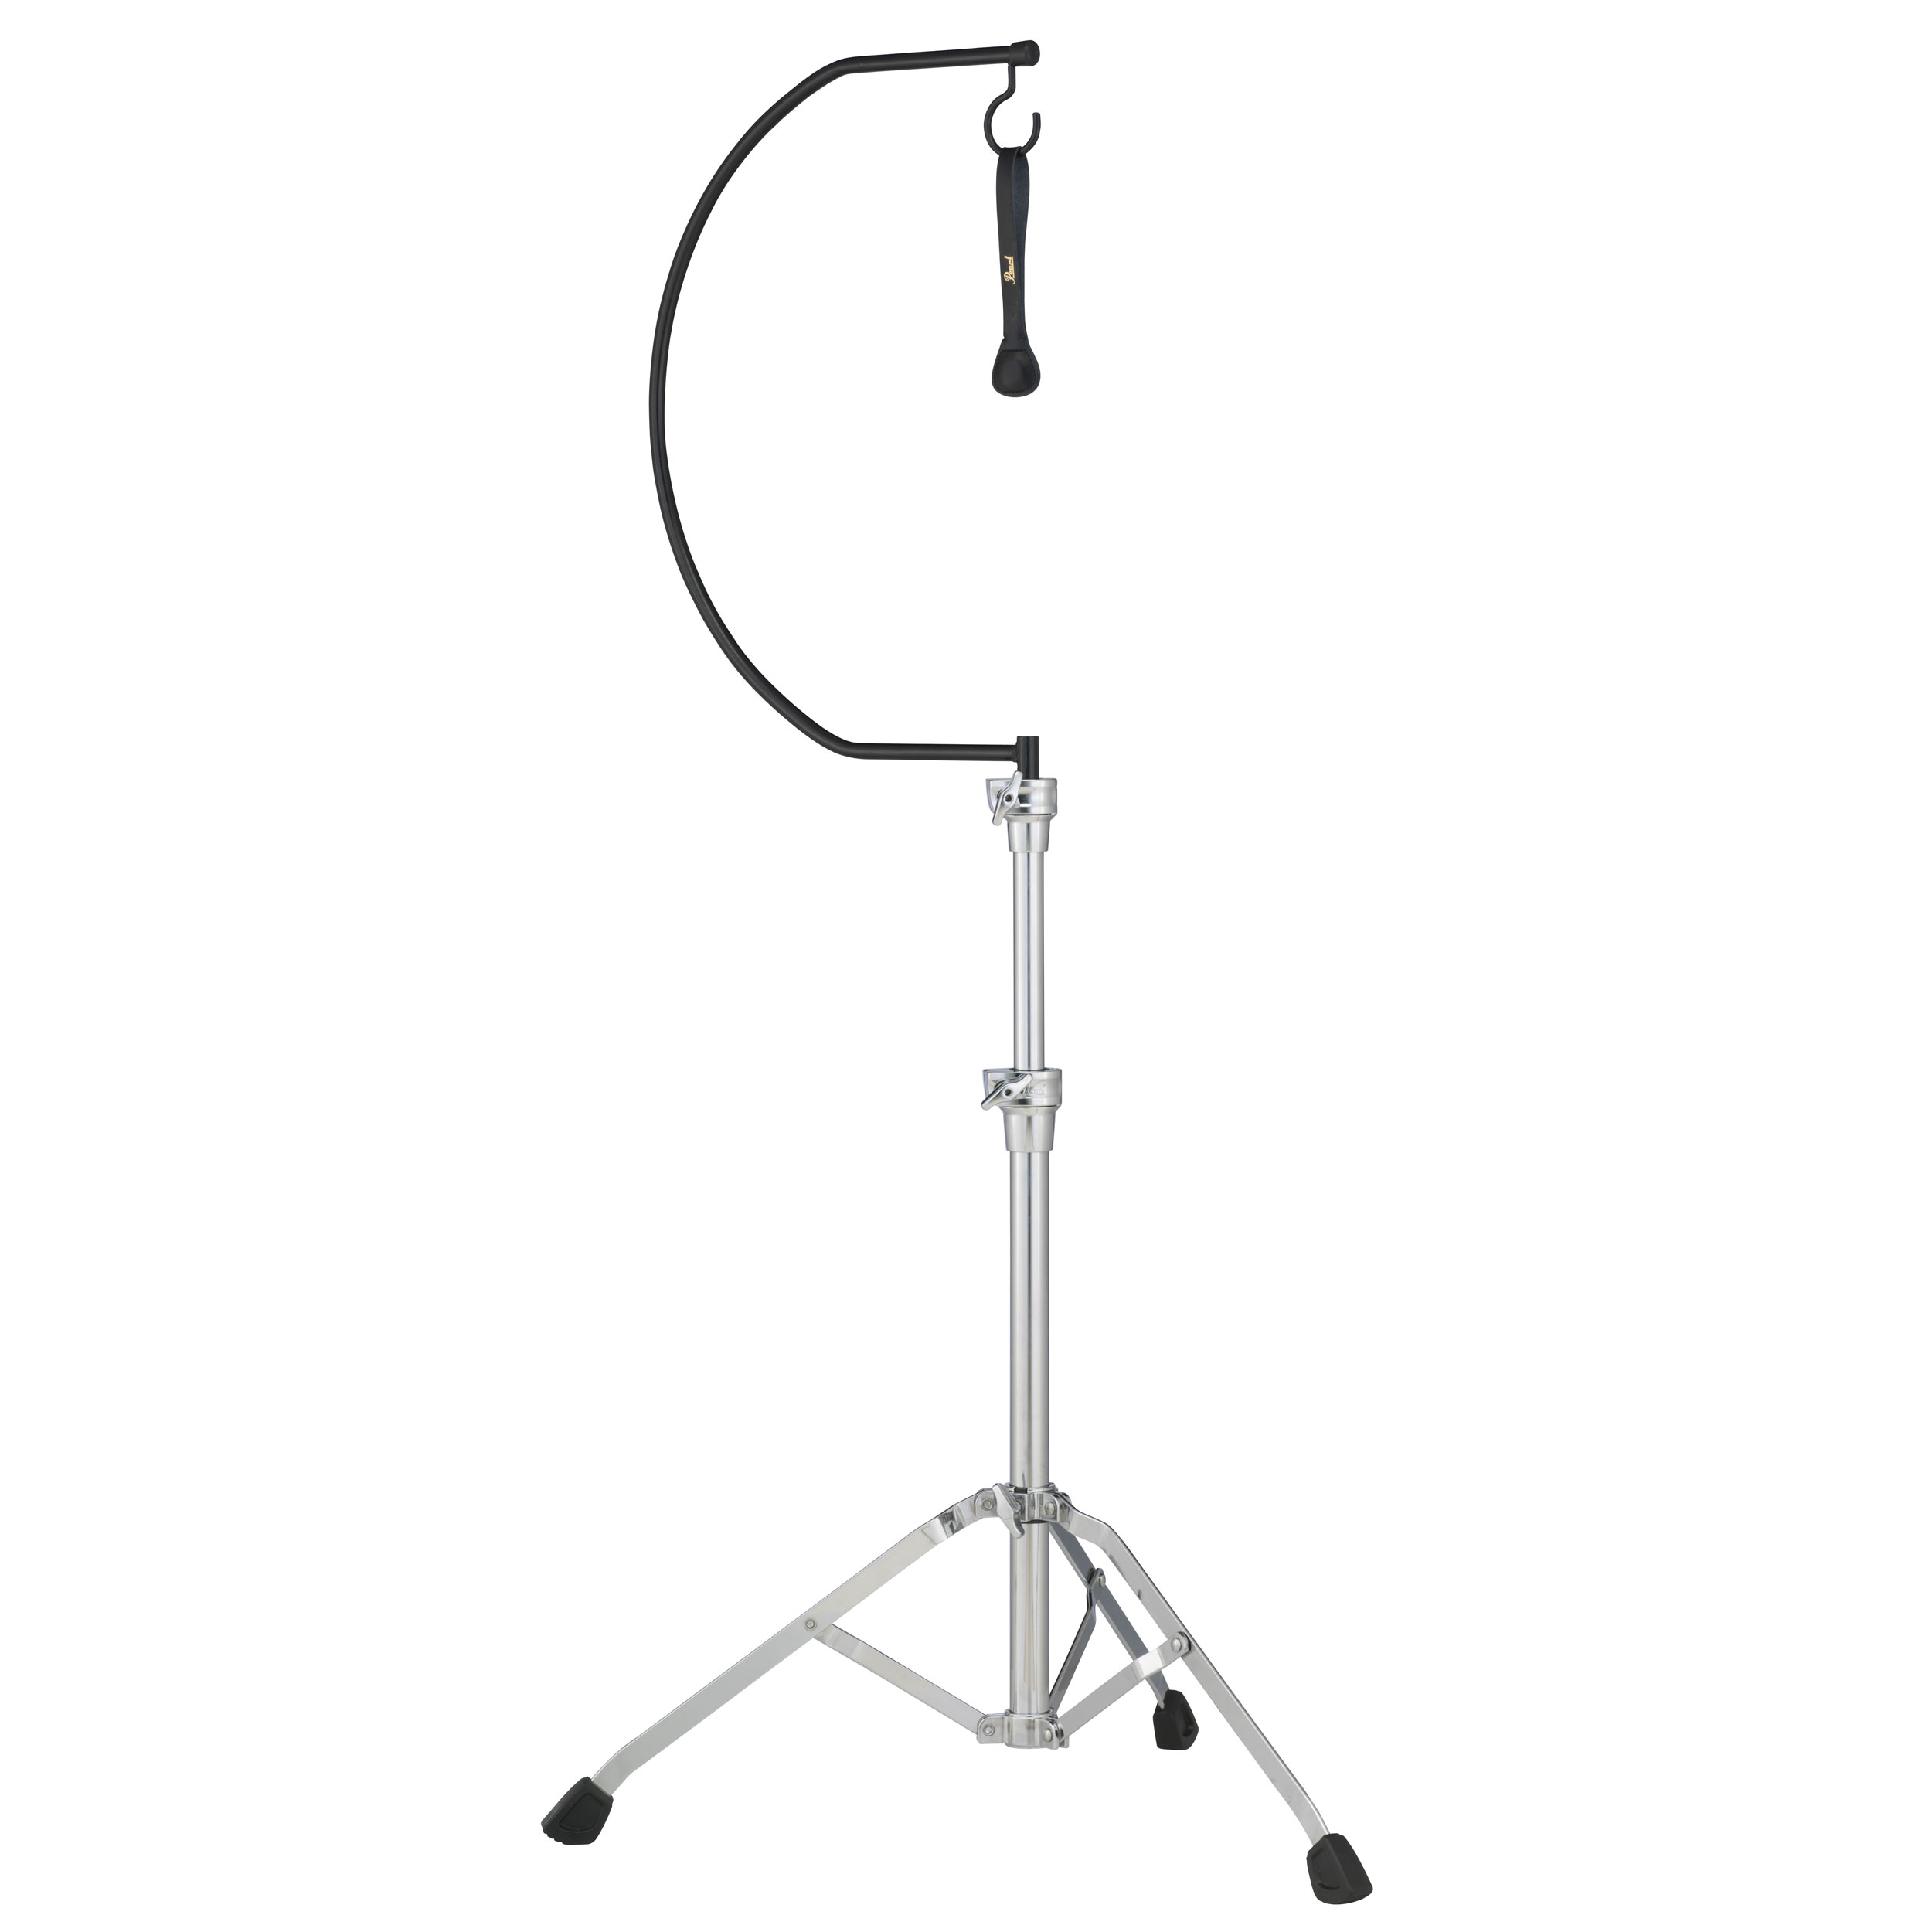 Pearl C1030SC Gooseneck Suspended Cymbal Stand